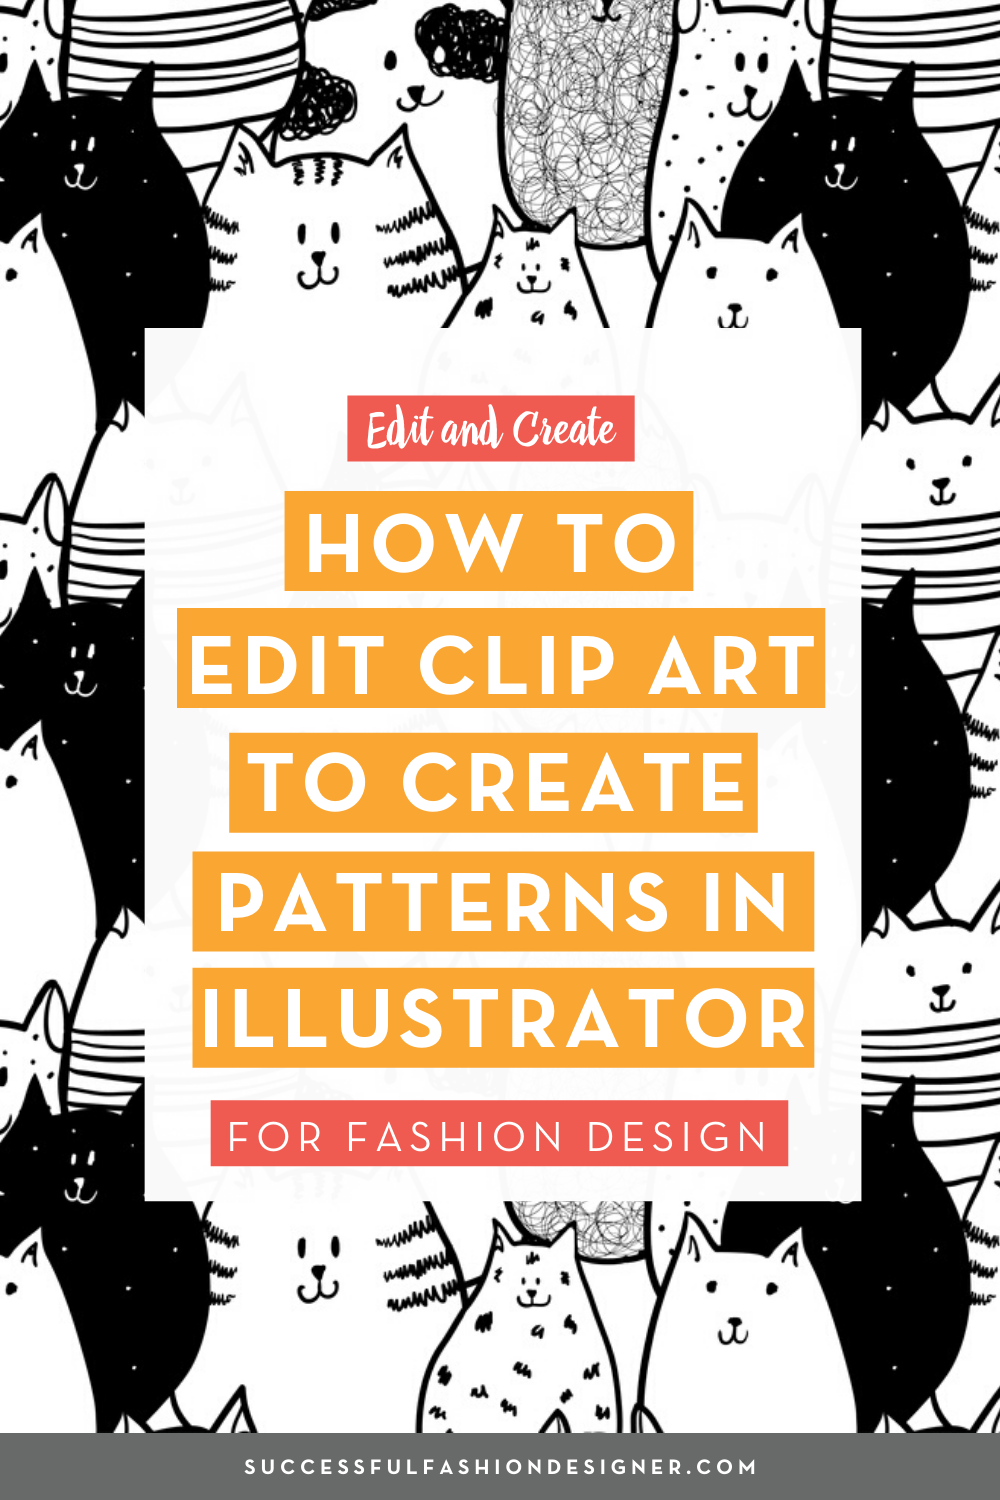 How to Edit Clip Art and Create a Repeating Pattern in